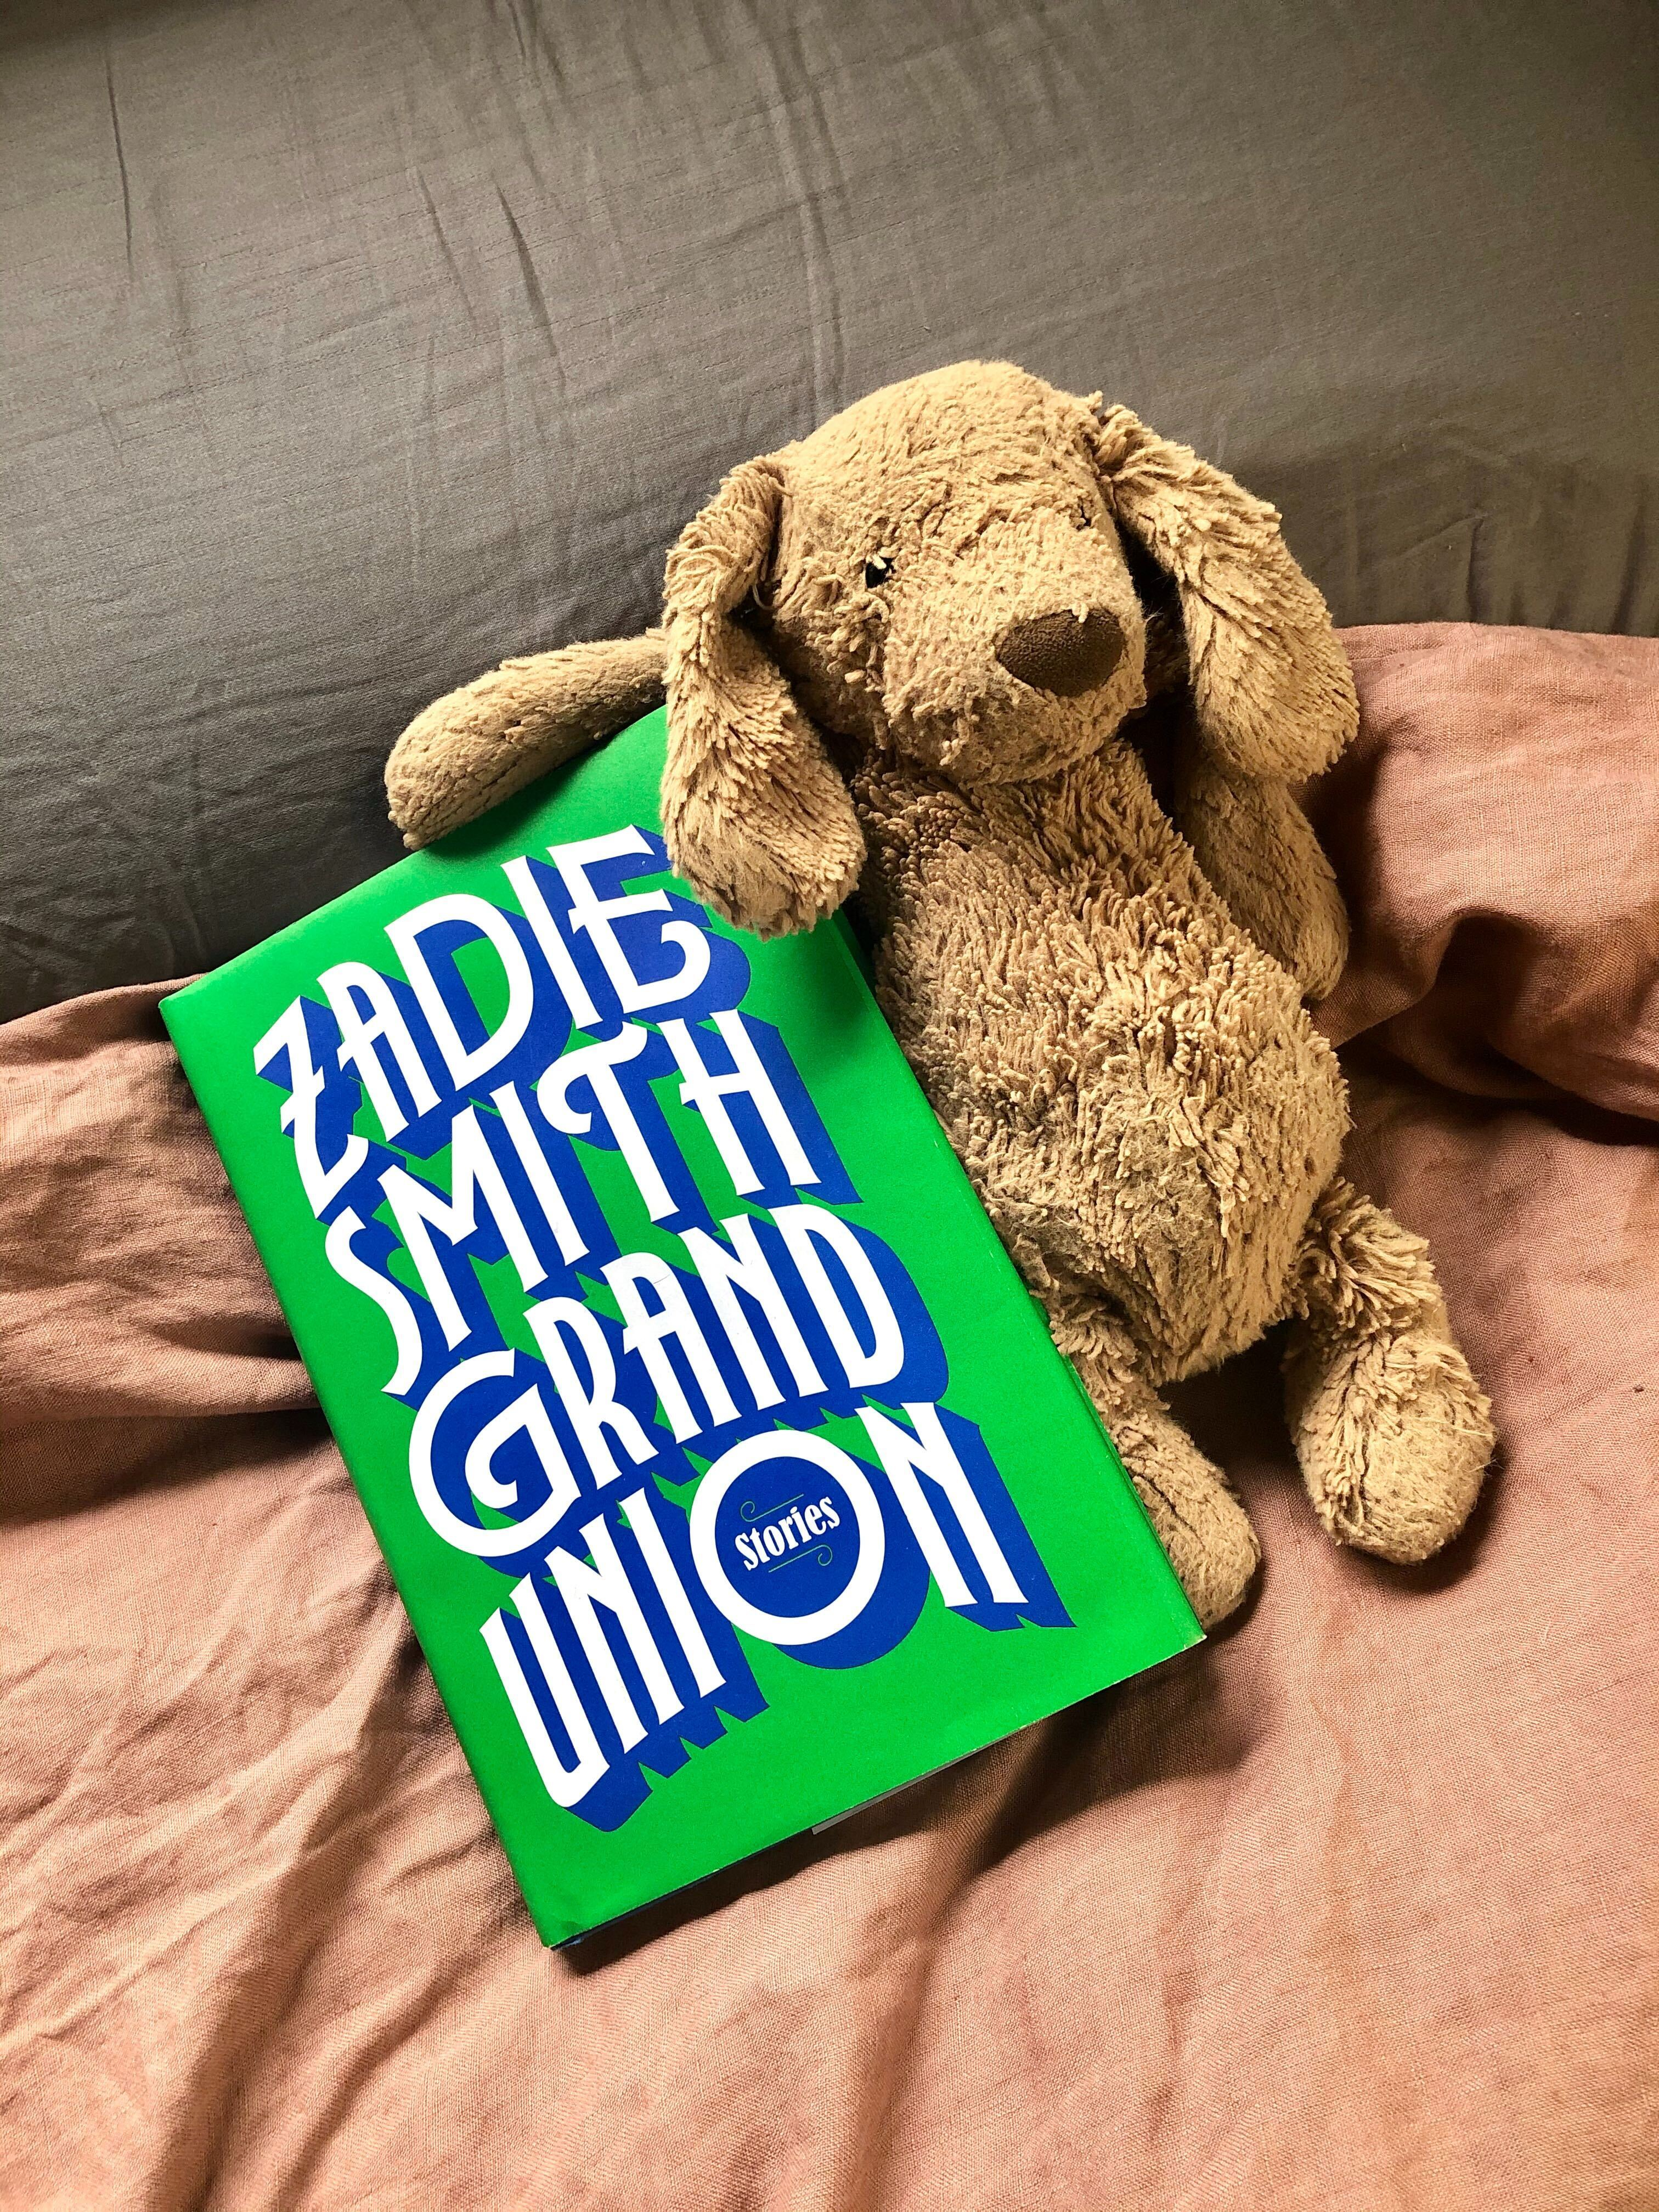 A photo of Zadie Smith's book Grand Union Stories, with a well-loved stuffed dog beside it.